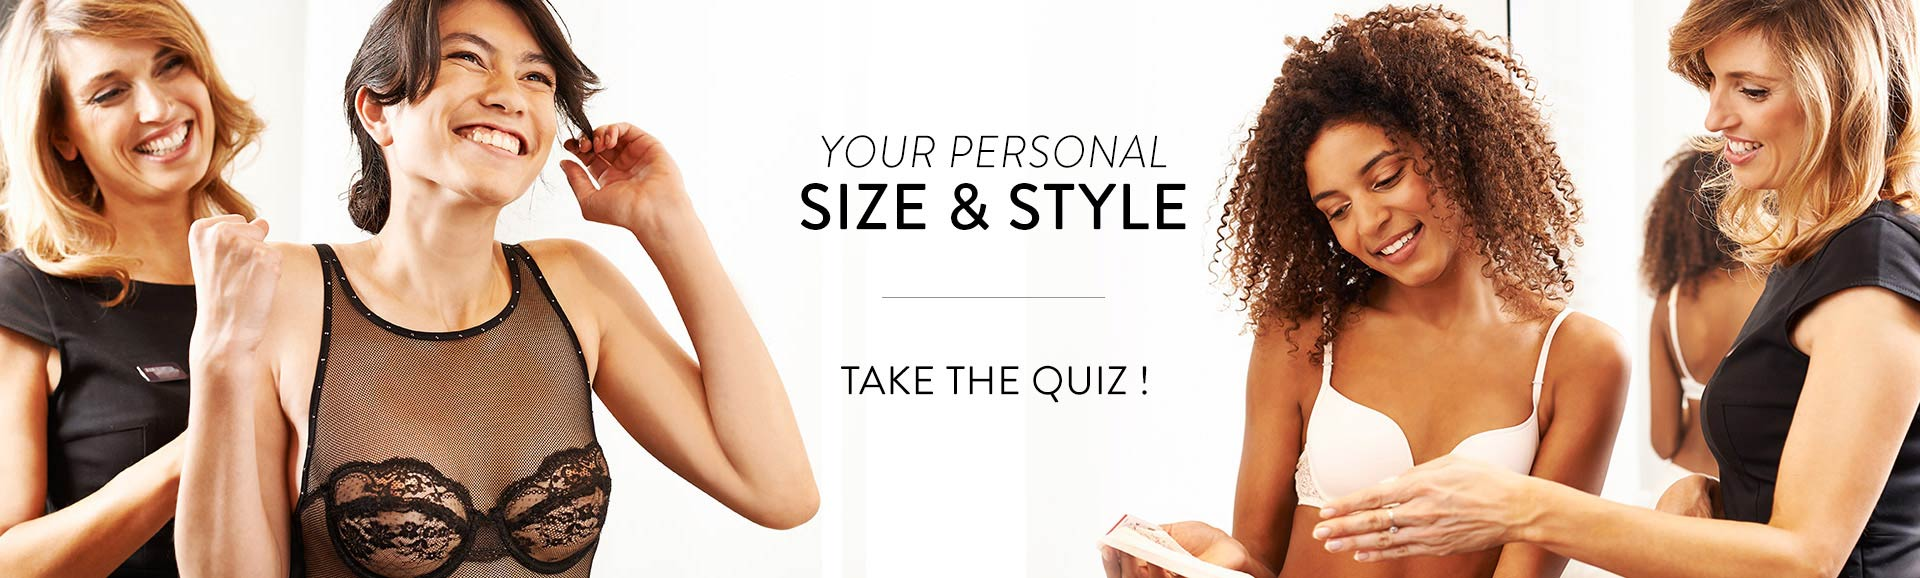 Your Size & Style